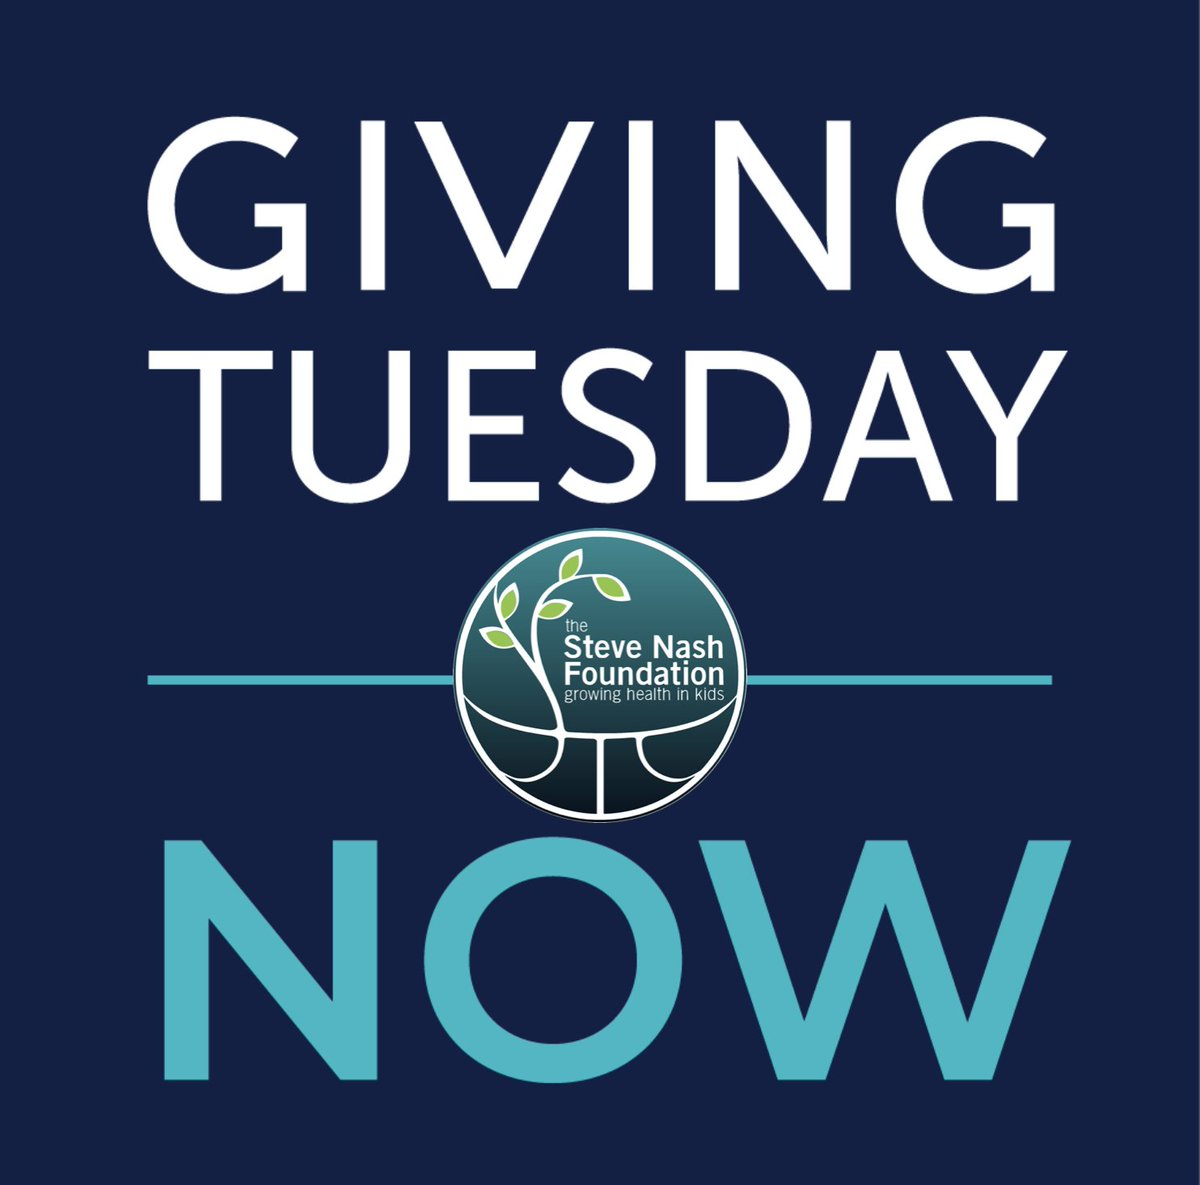 Taking care of one another, and innovating in how we do, is more important than ever.  On this #GivingTuesdayNow, join us at the @stevenash Foundation in supporting those working to lift up our communities: https://t.co/St3eet8JS0 https://t.co/EvheIajud0